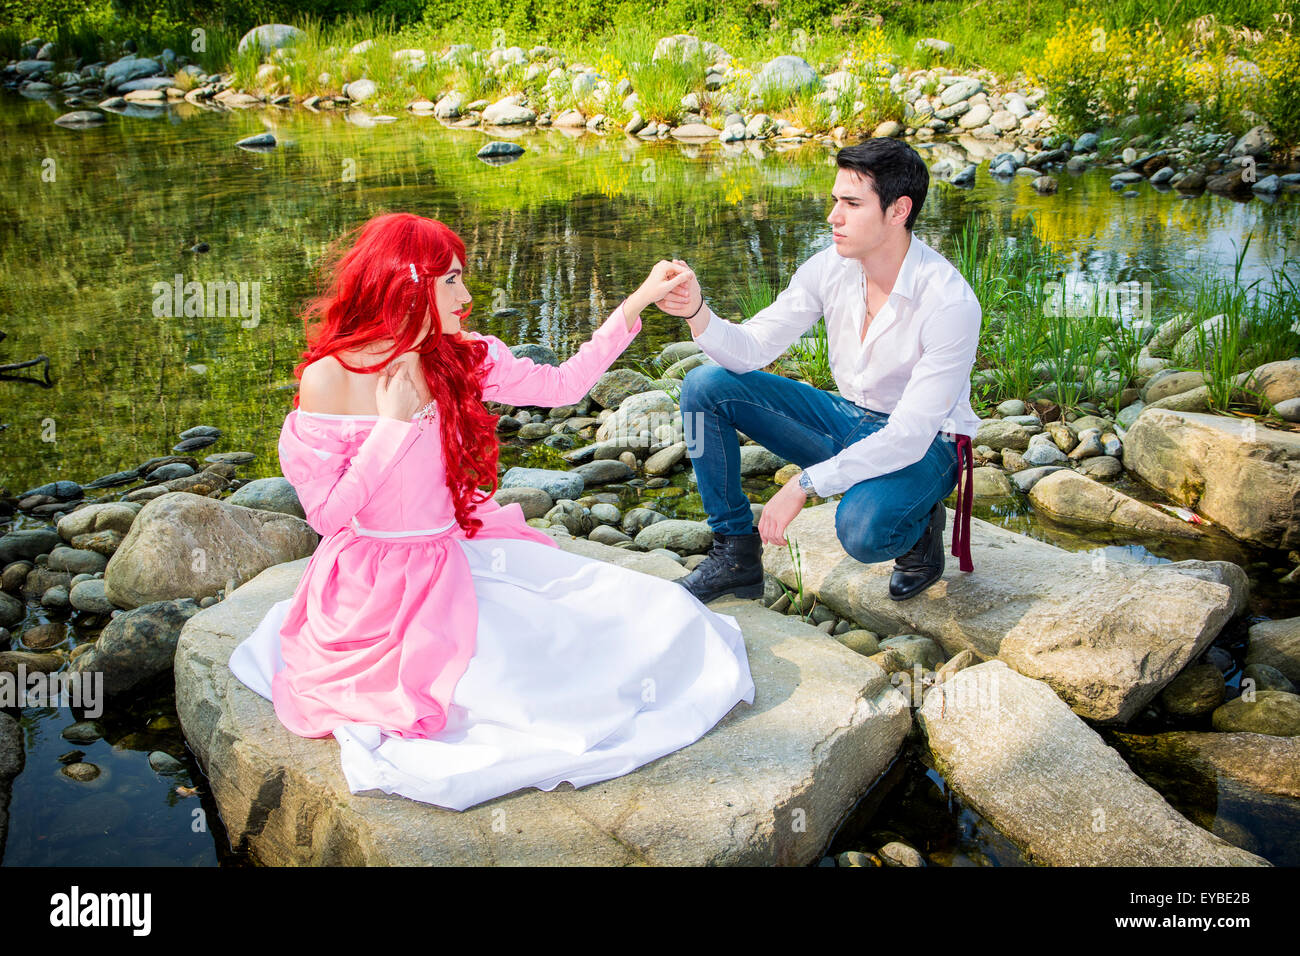 Woman In Dress Kneeling On Stock Photos & Woman In Dress ...